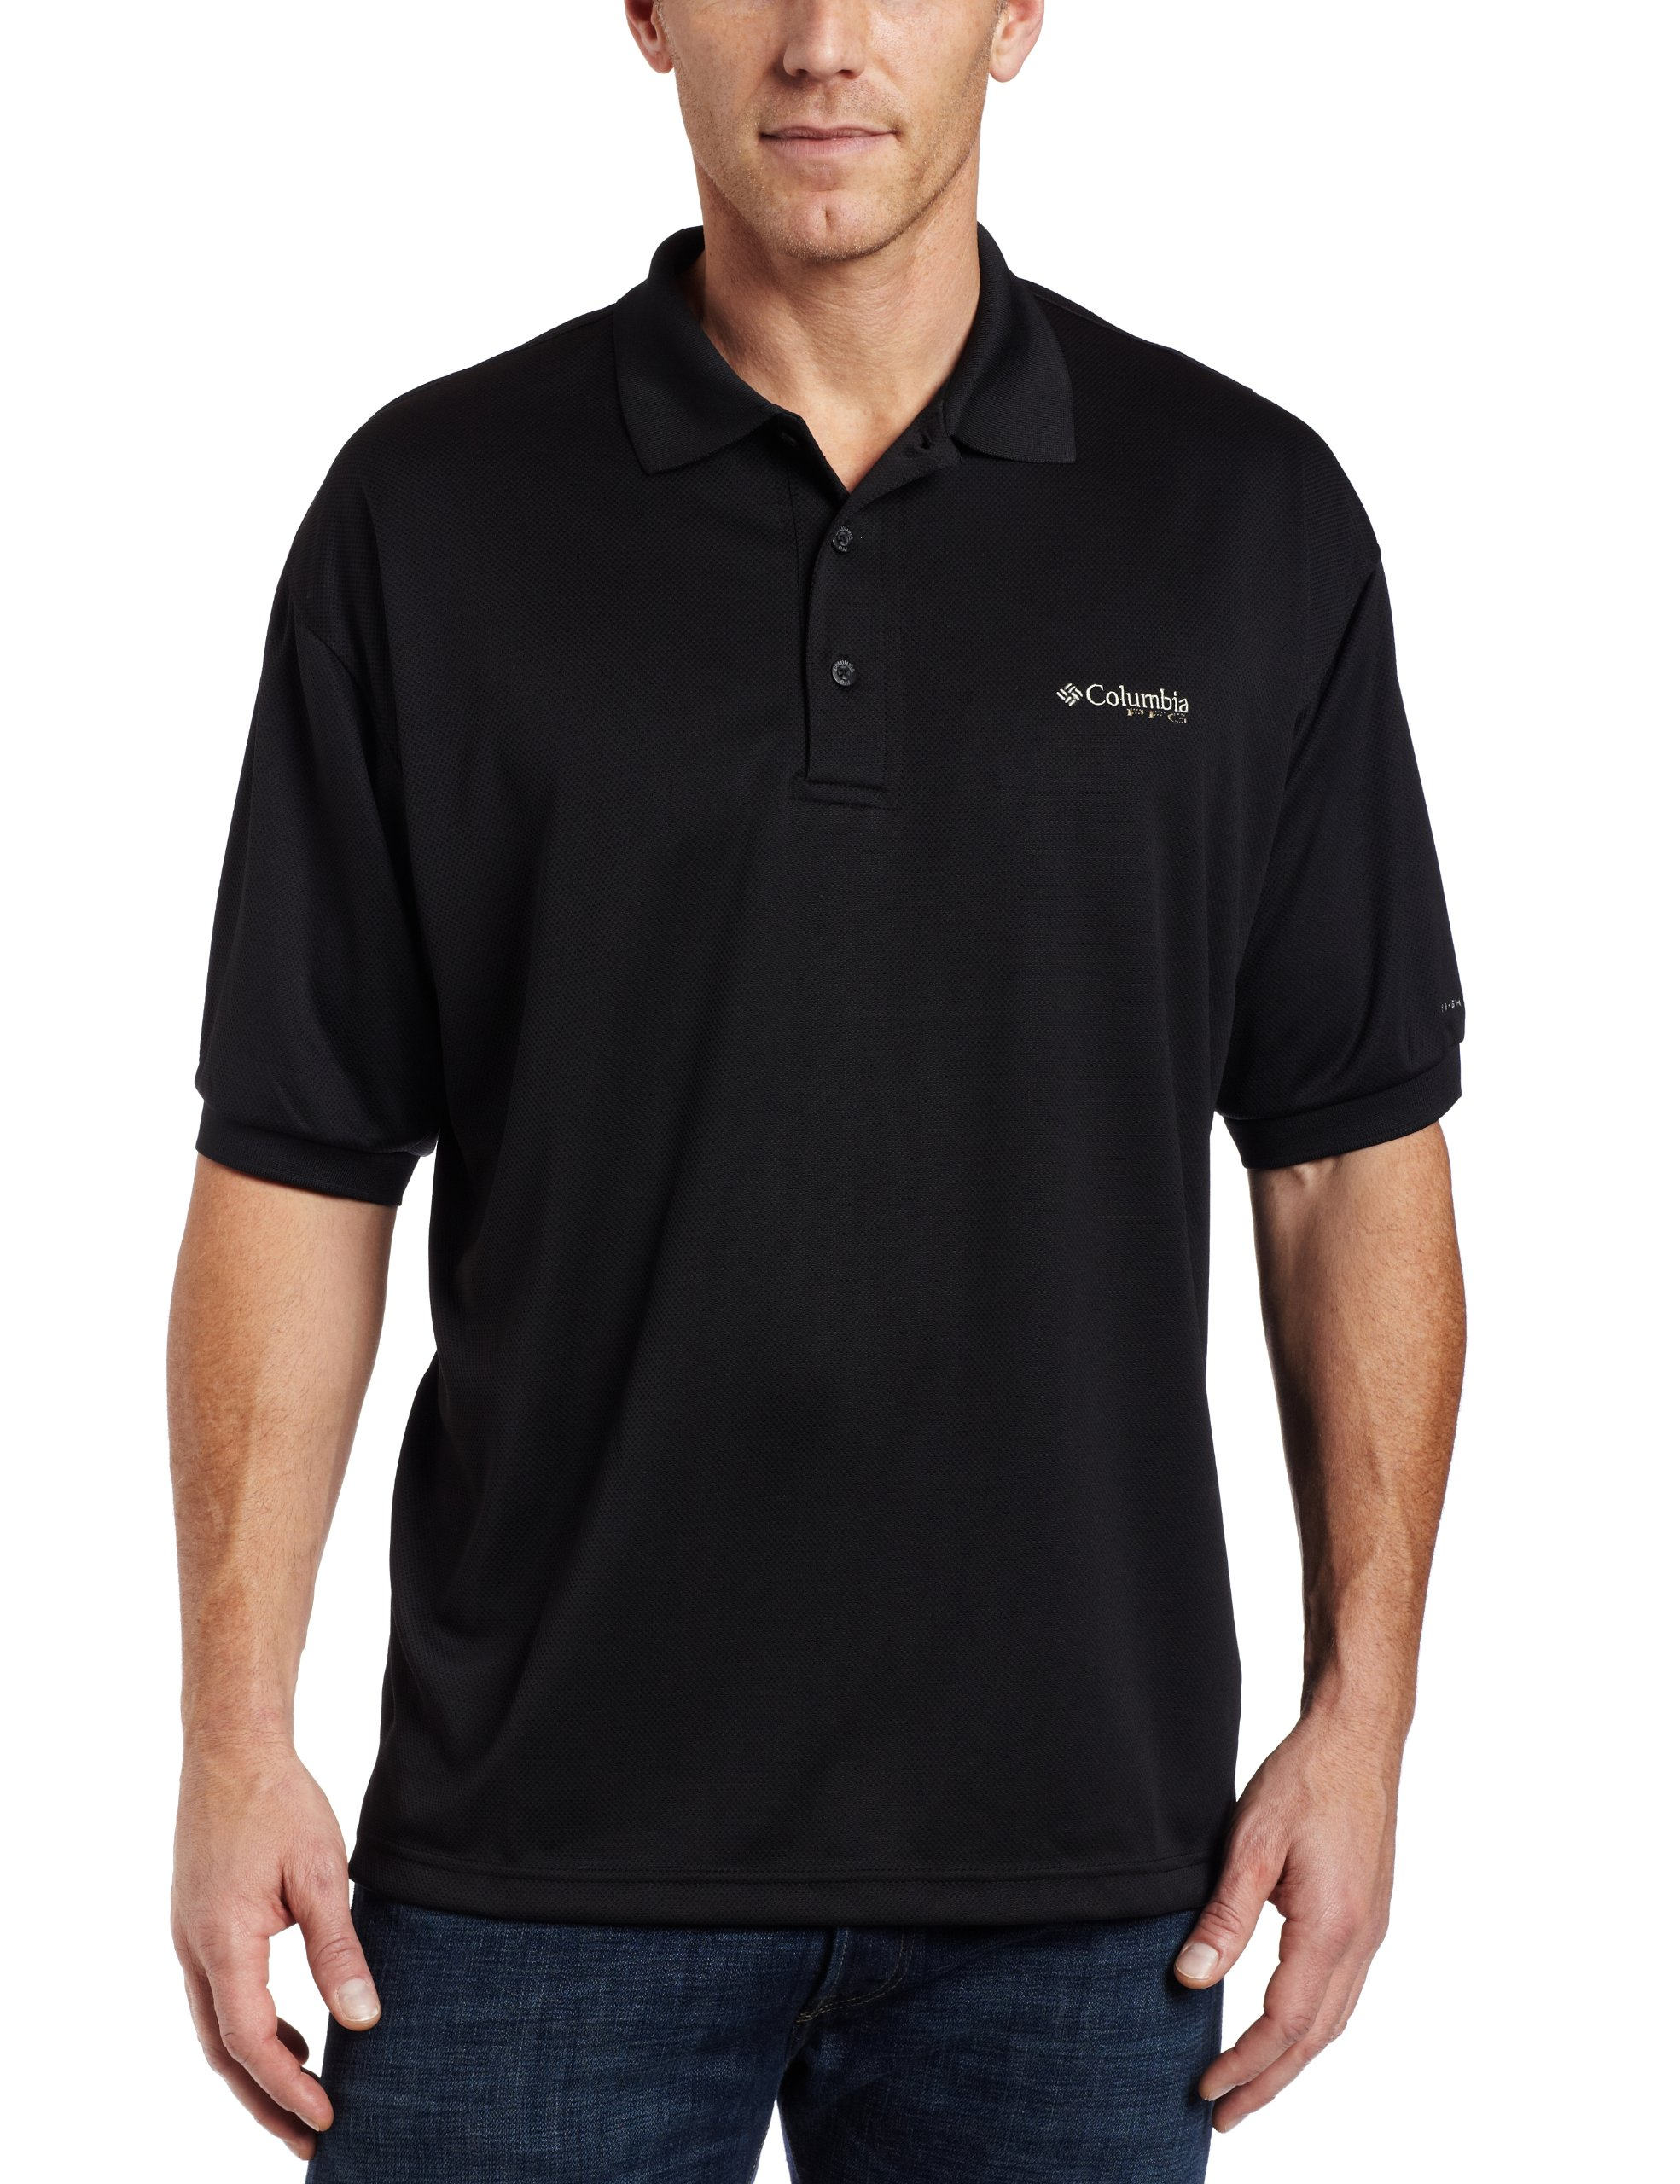 Columbia Men's Perfect Cast Polo, Black, Medium by Columbia